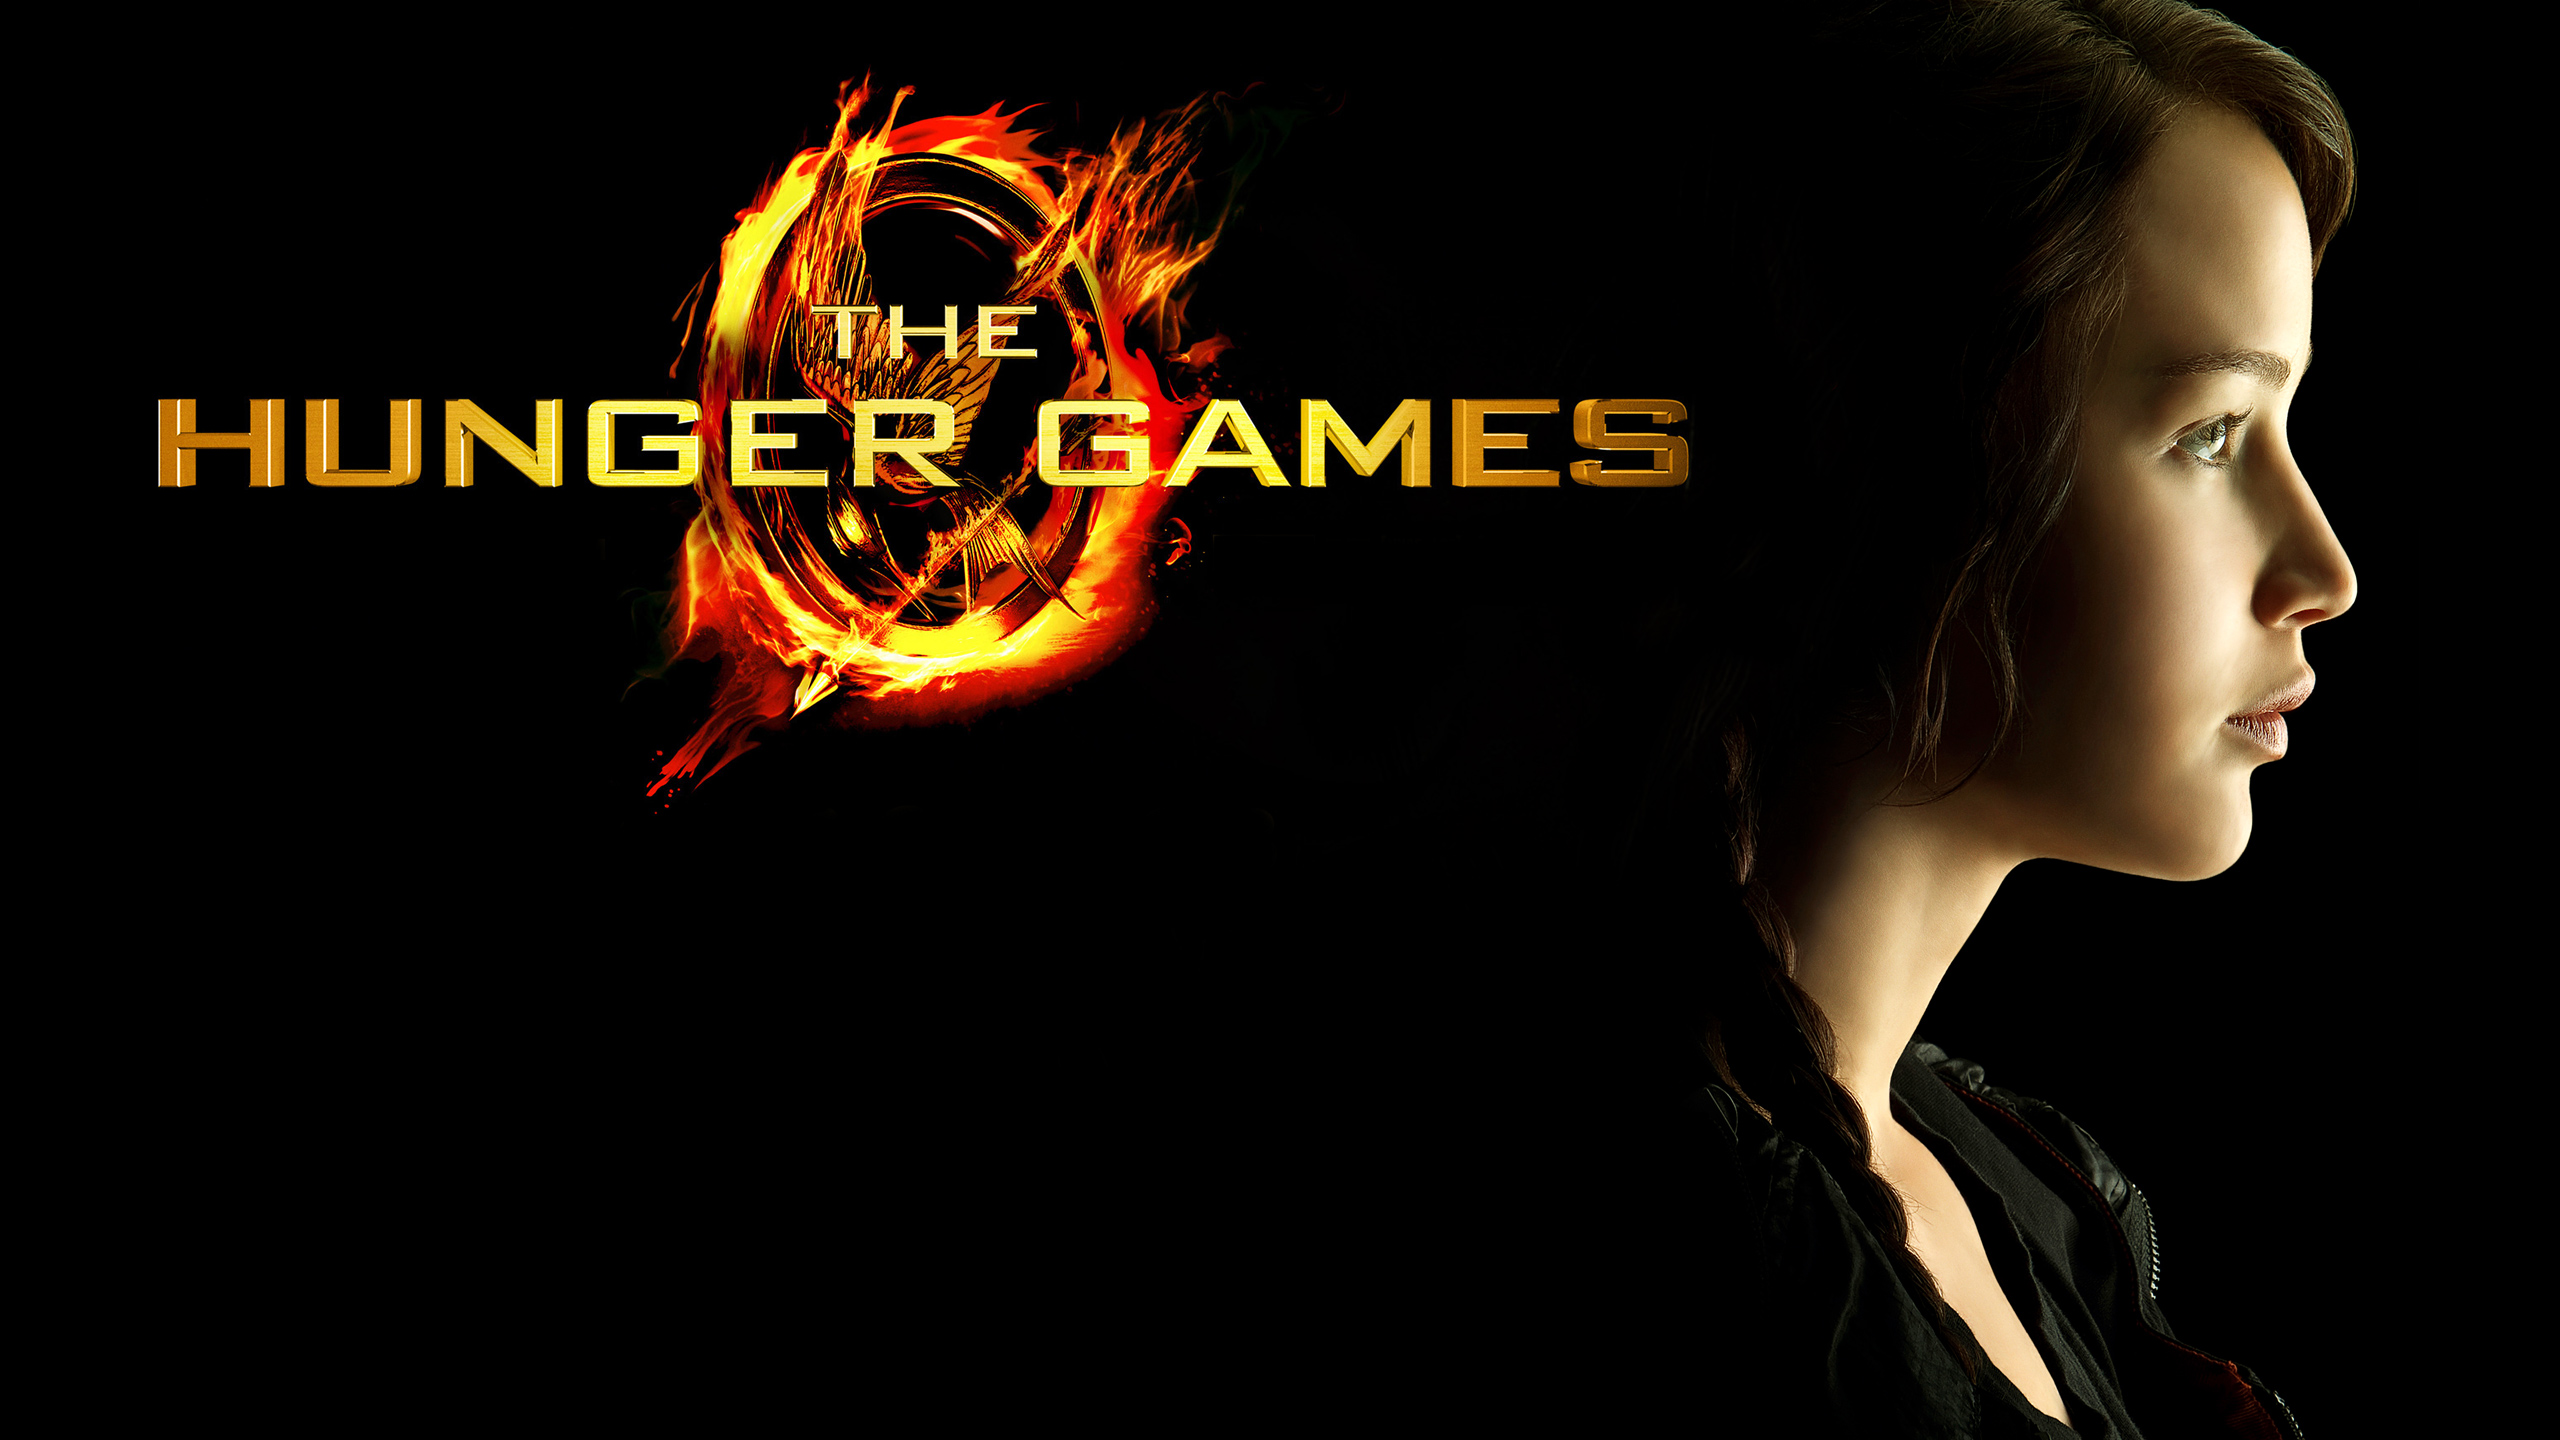 Jennifer Lawrence Hunger Games 1576.28 Kb